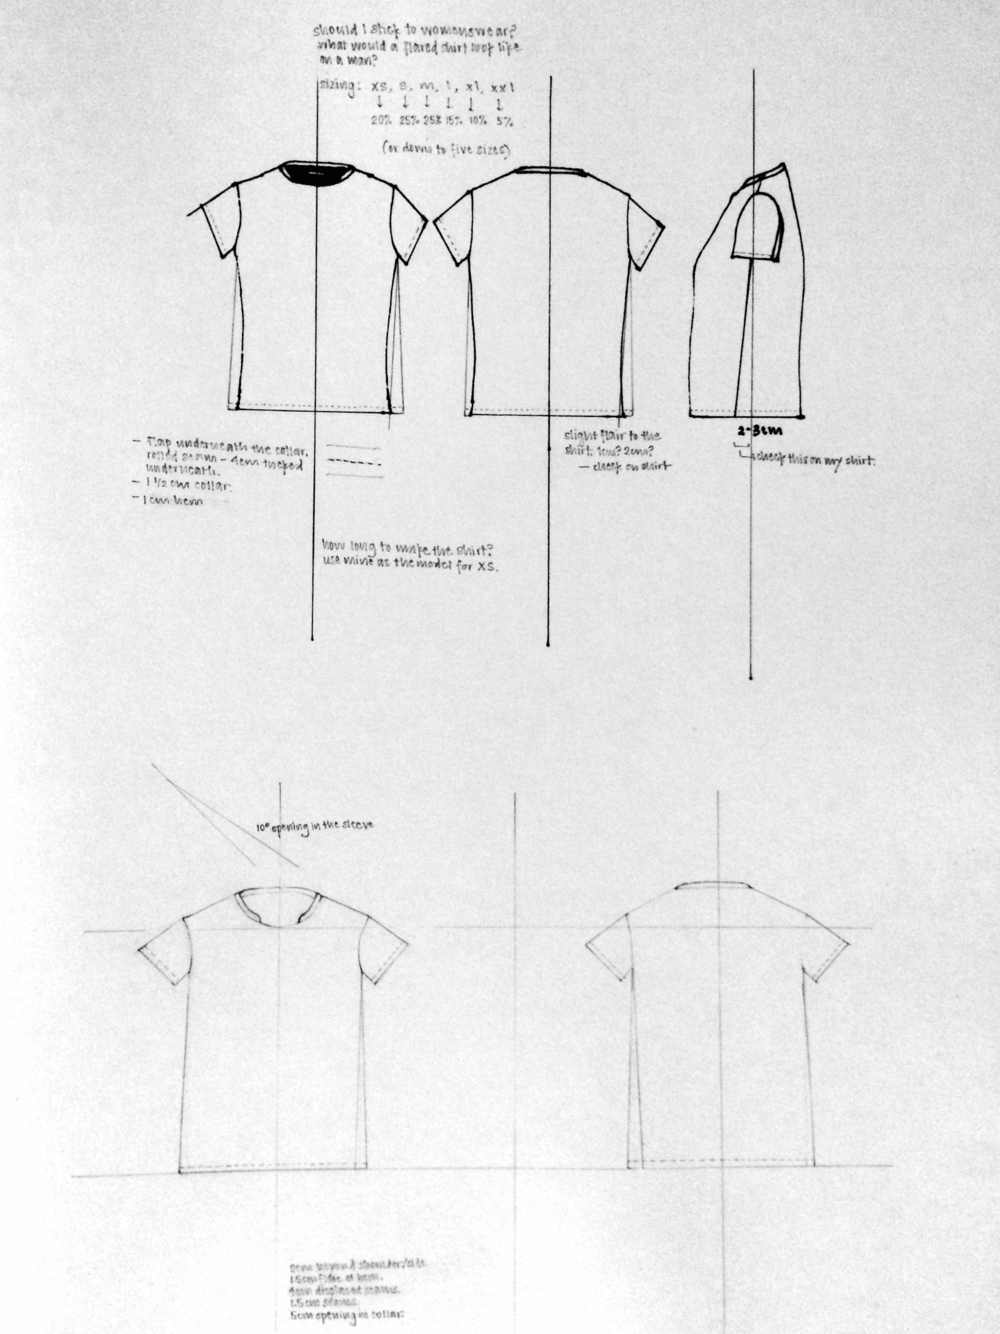 Earliest Flat Drawing of The Shorter Tee.